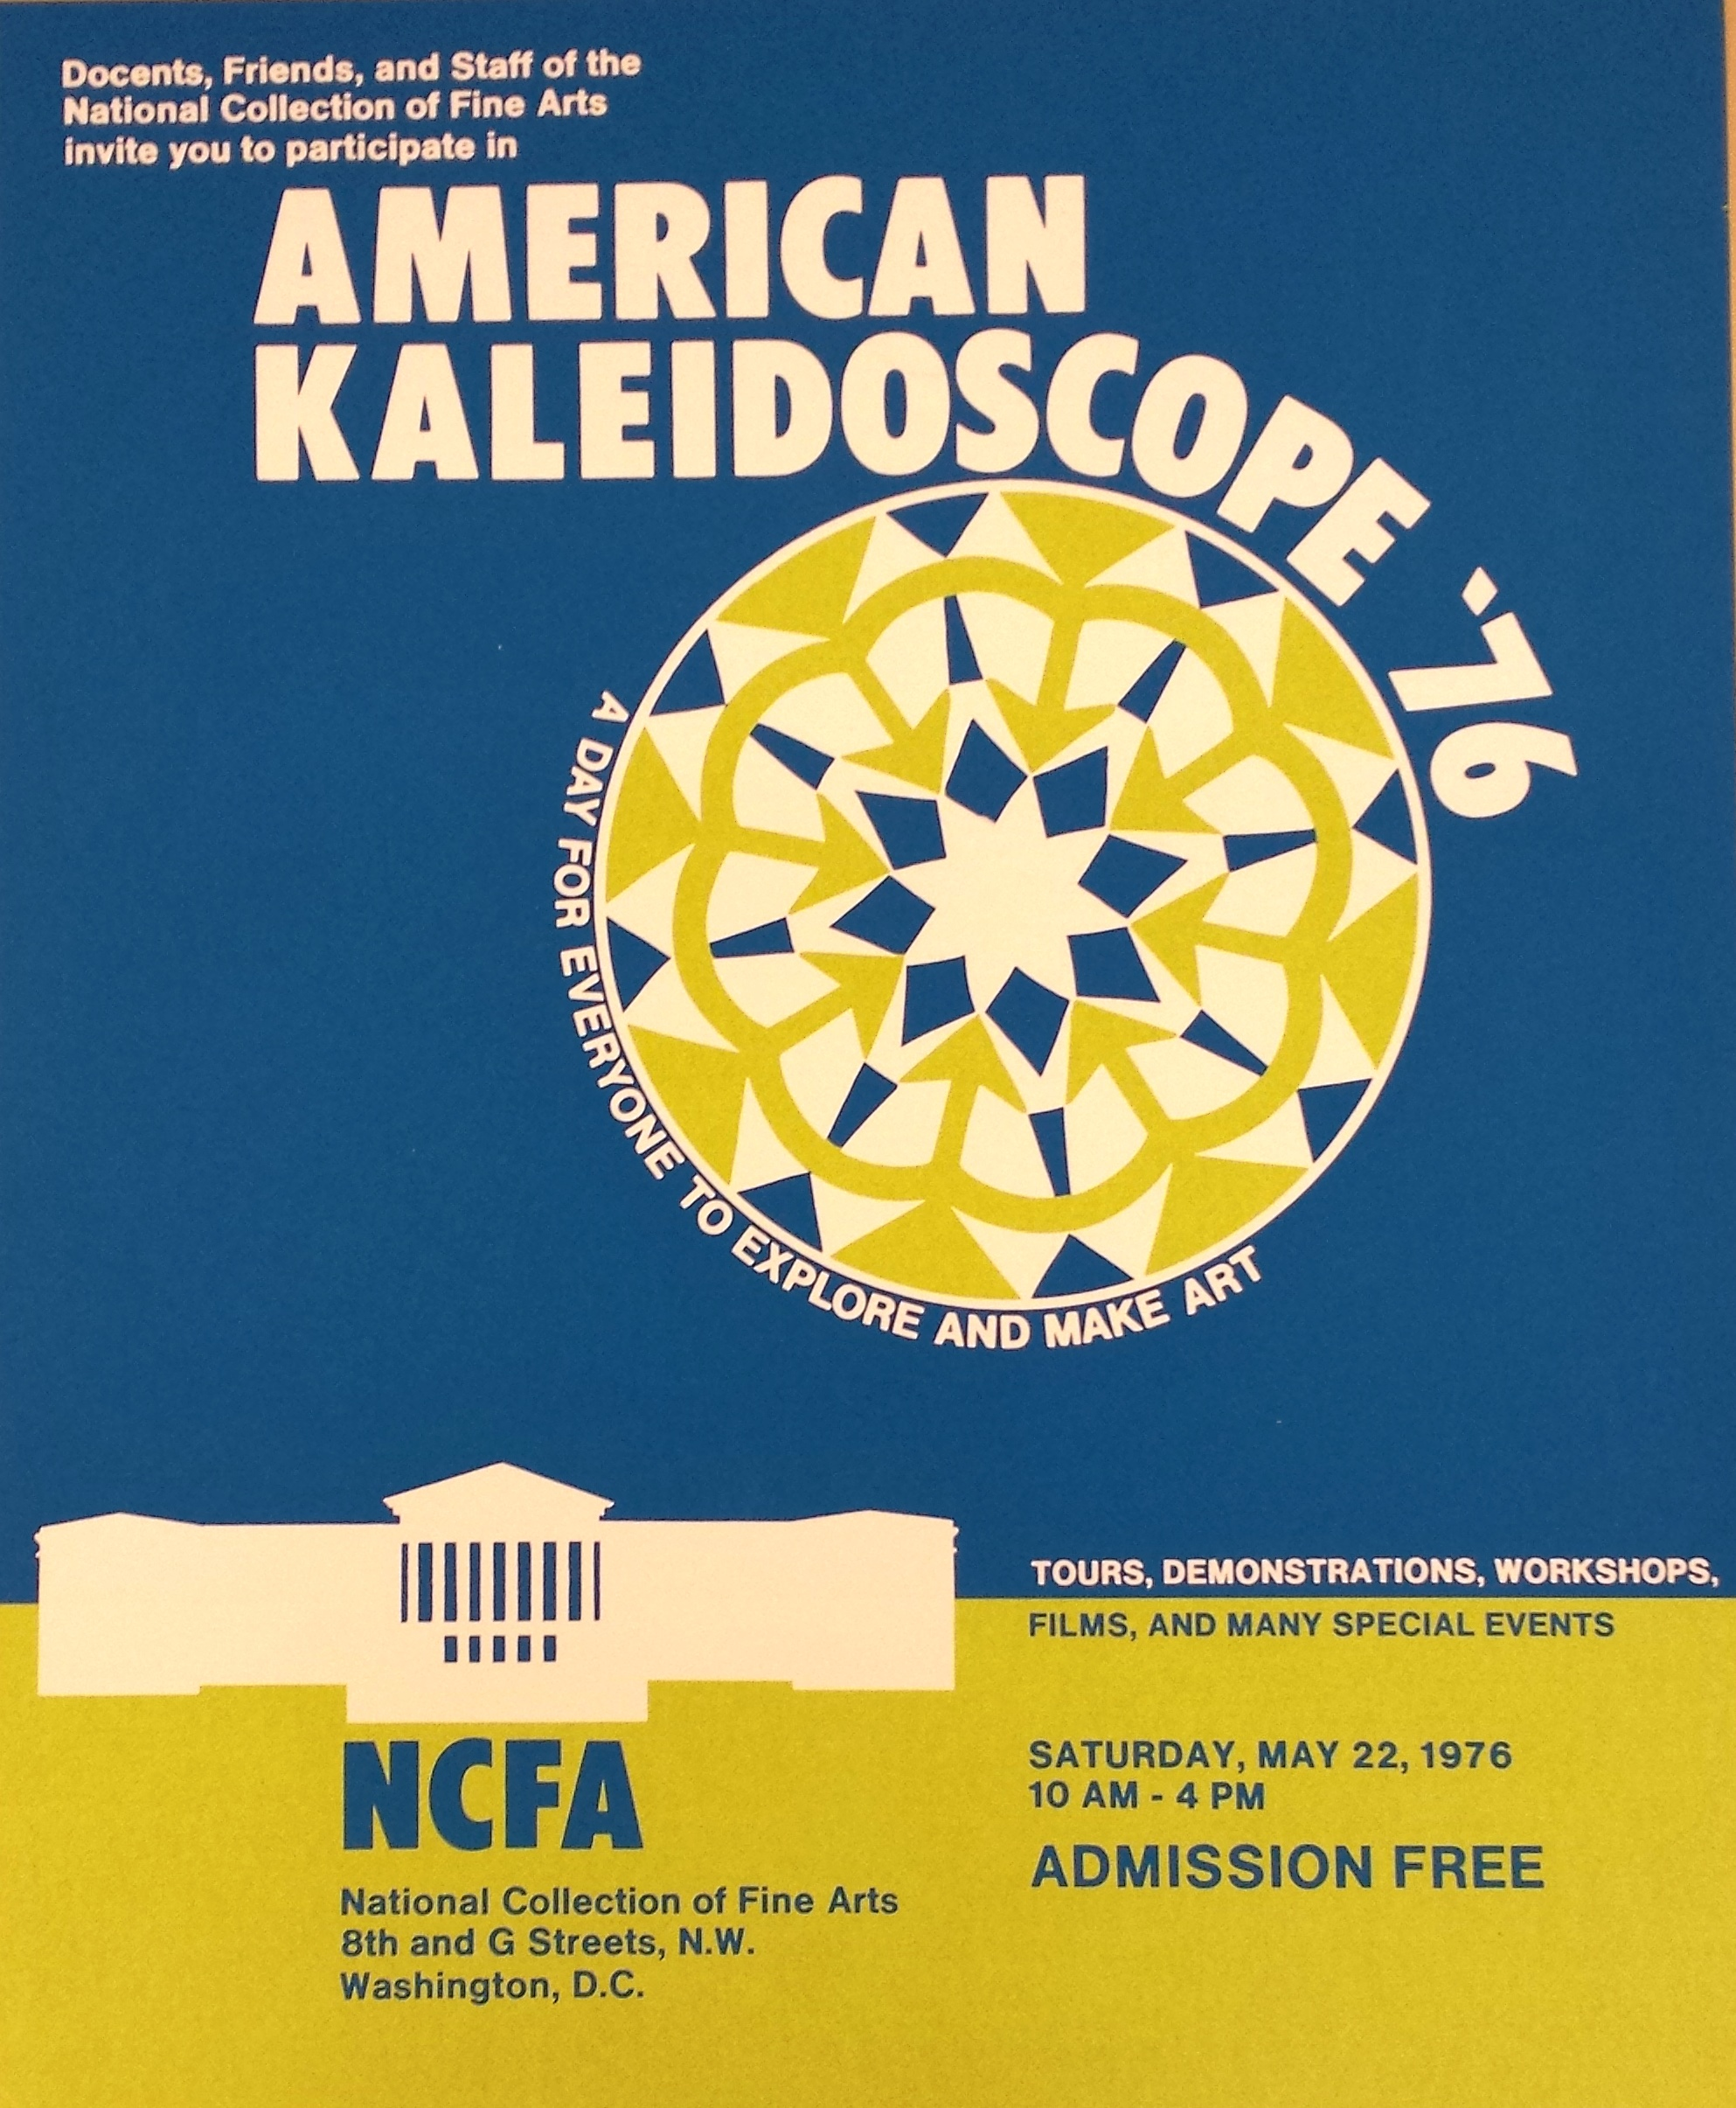 American Kaleidoscope: A Day for Everyone to Explore and Make Art, 1976.